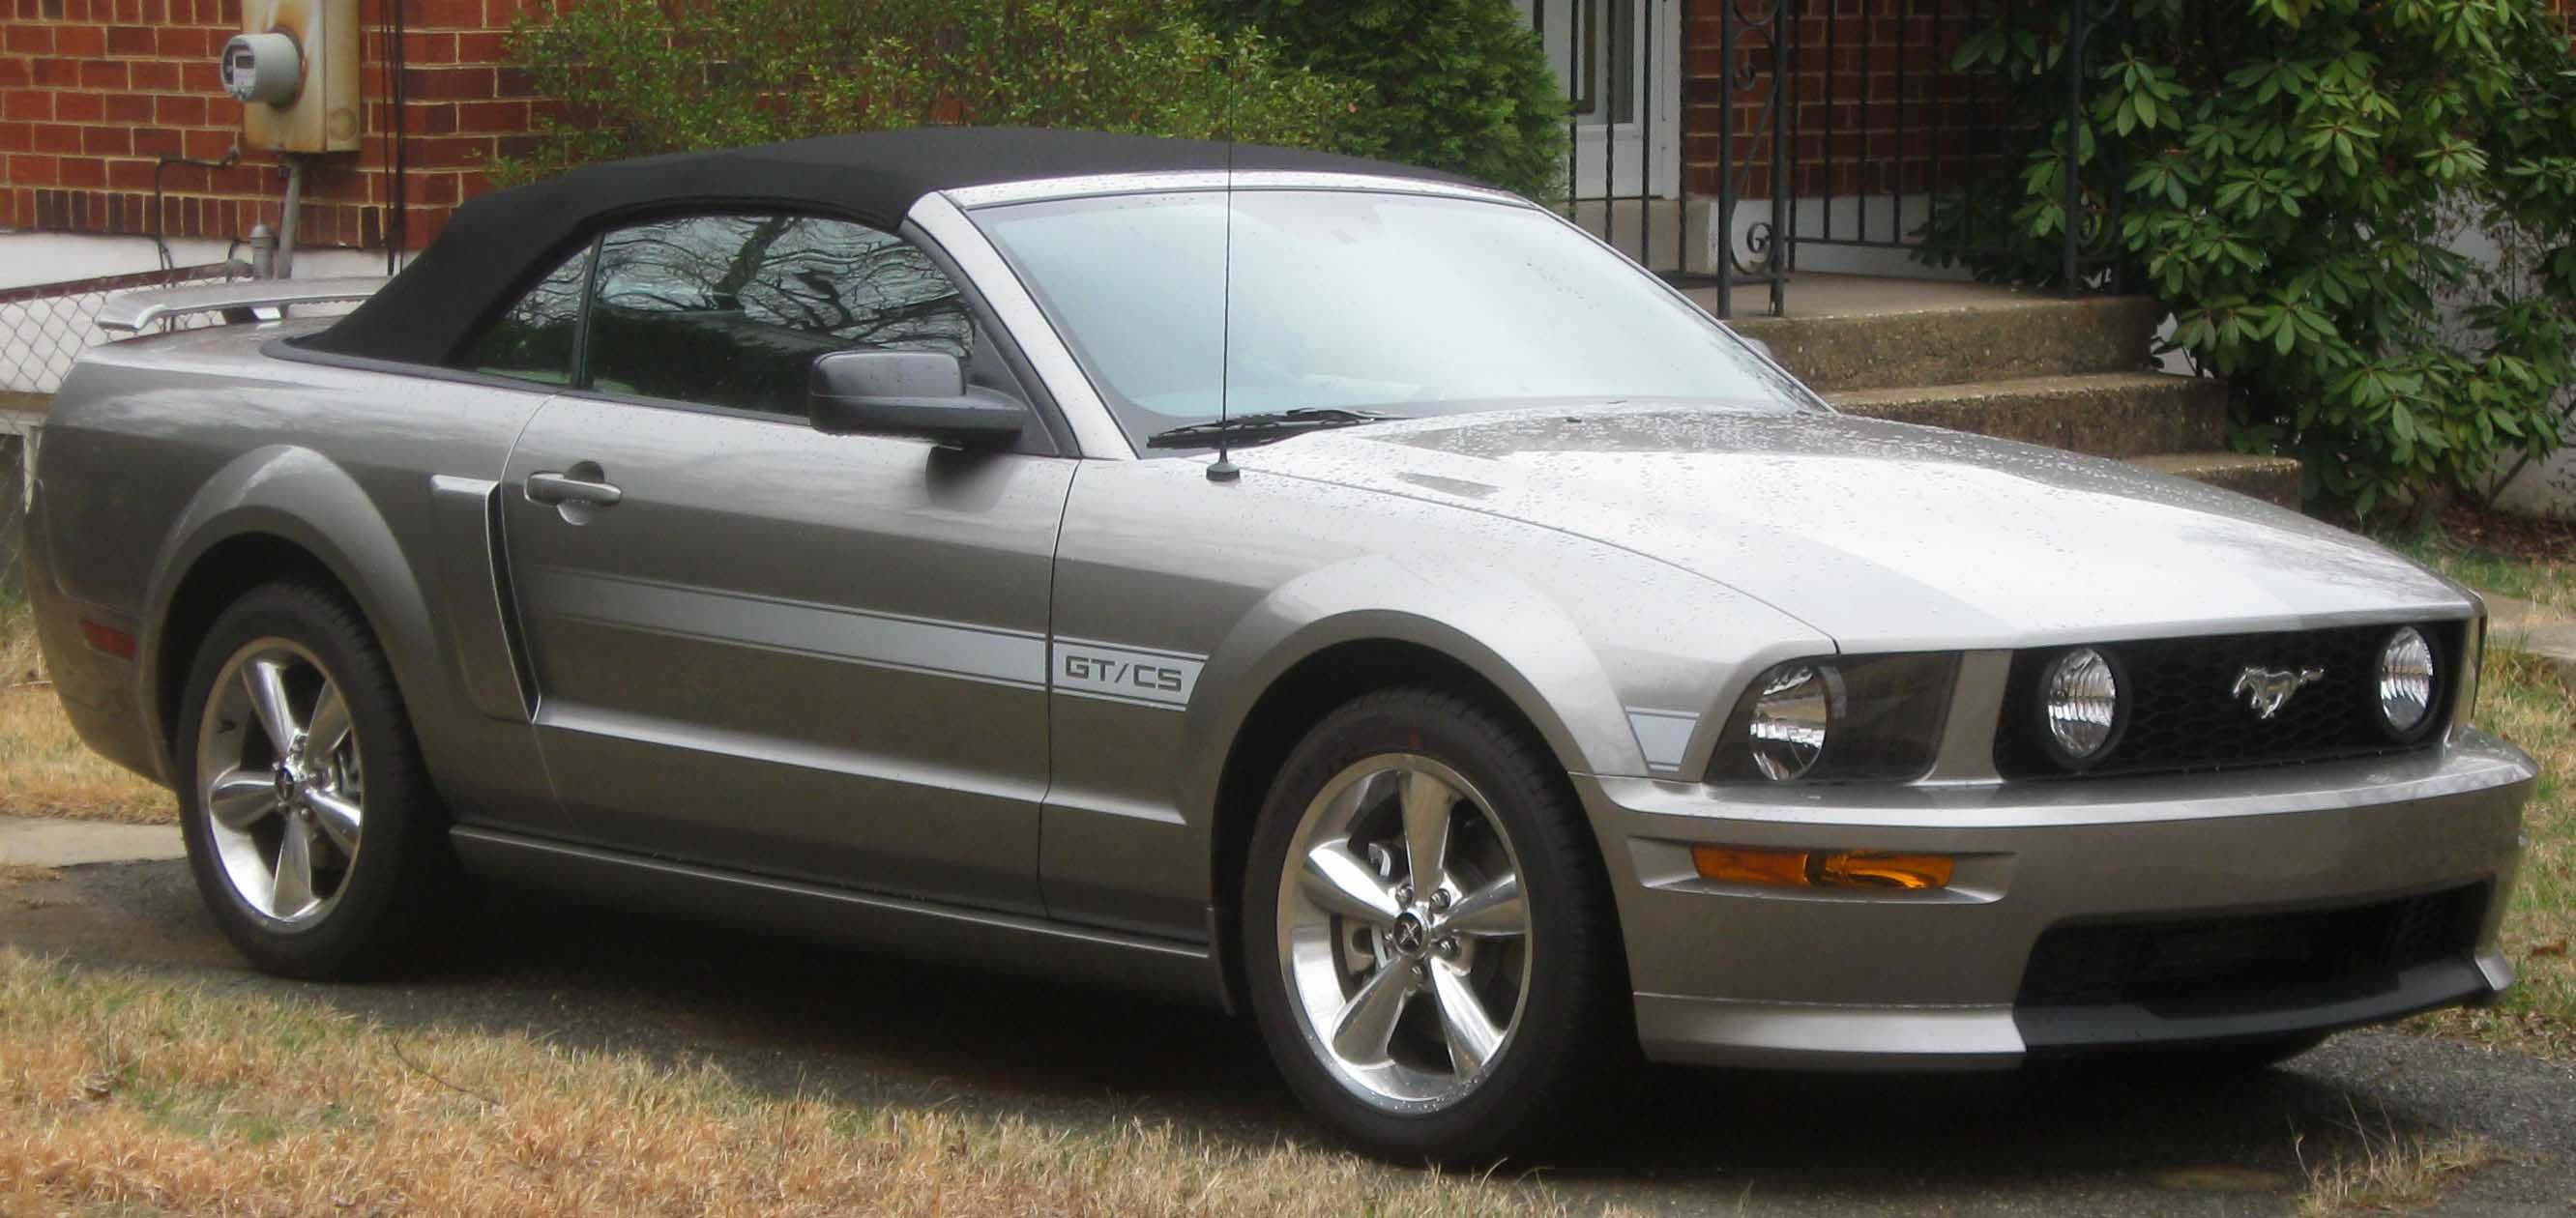 Ford Mustang Wikipedia The Free Encyclopedia Ford Mustang Gt Ford Mustang Mustang